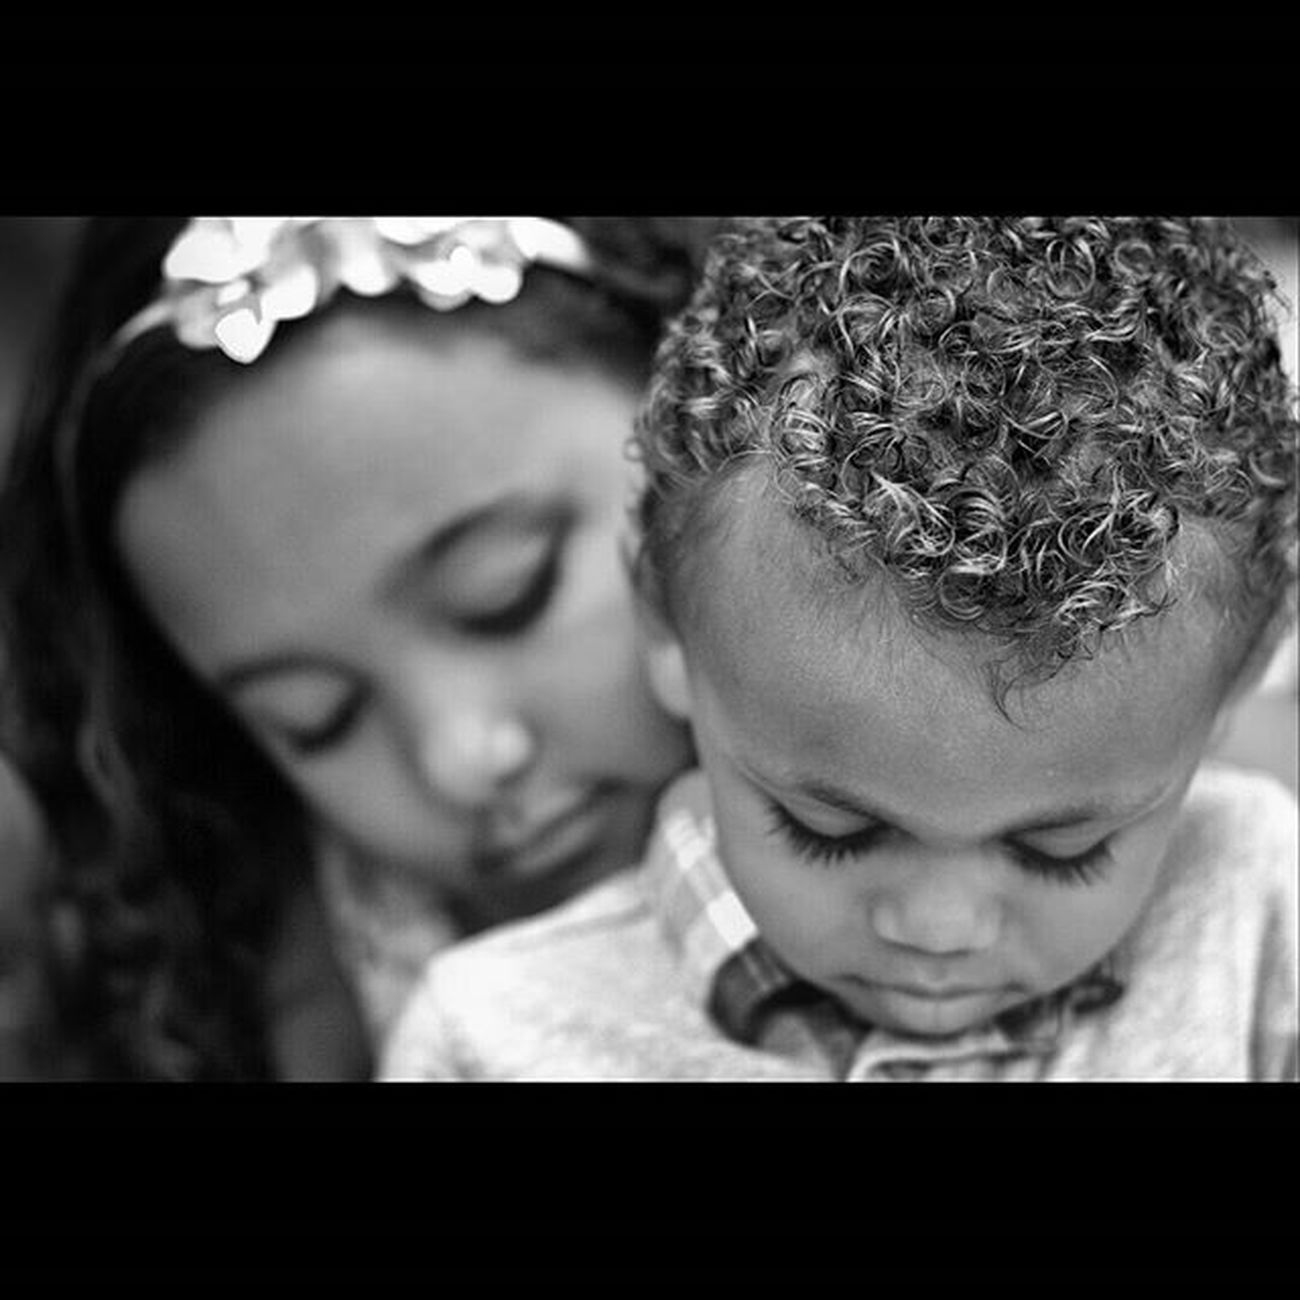 The Best  Parts of me in One Photo Photooftheday Blackandwhitephotography My Heart n Soul Beaner n Sirbean Canon DSLR Candid Photography from our Photoshoot Today Baby Models Happy Blessed  Love we're just Living Life Beanlife